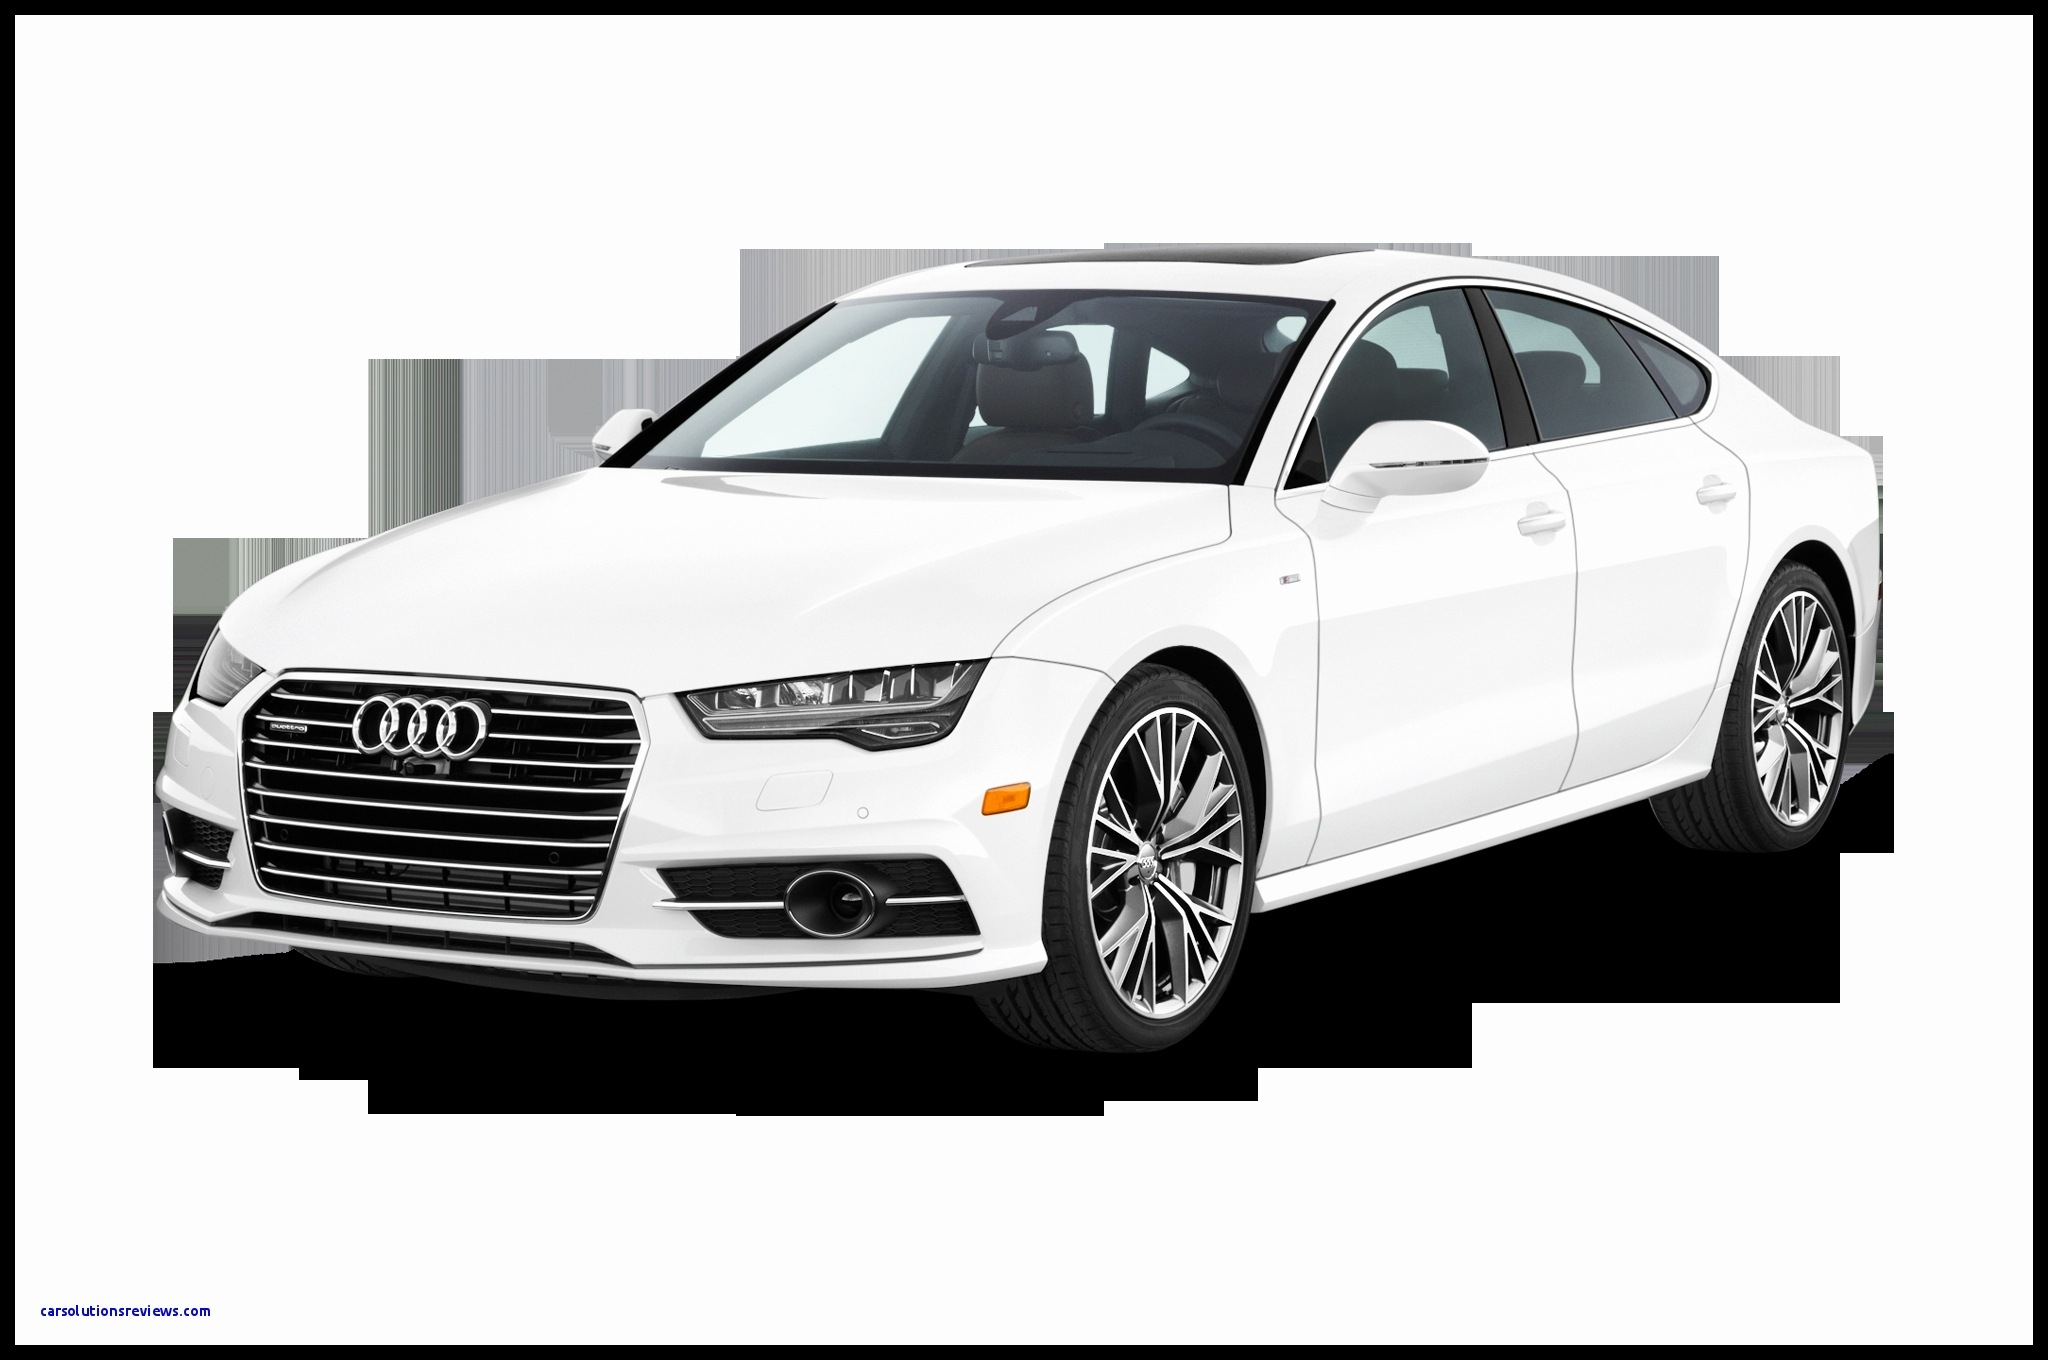 All Audi Models 2005 Best Cool Hd Car Wallpapers Awesome Od Car S Audi Cars